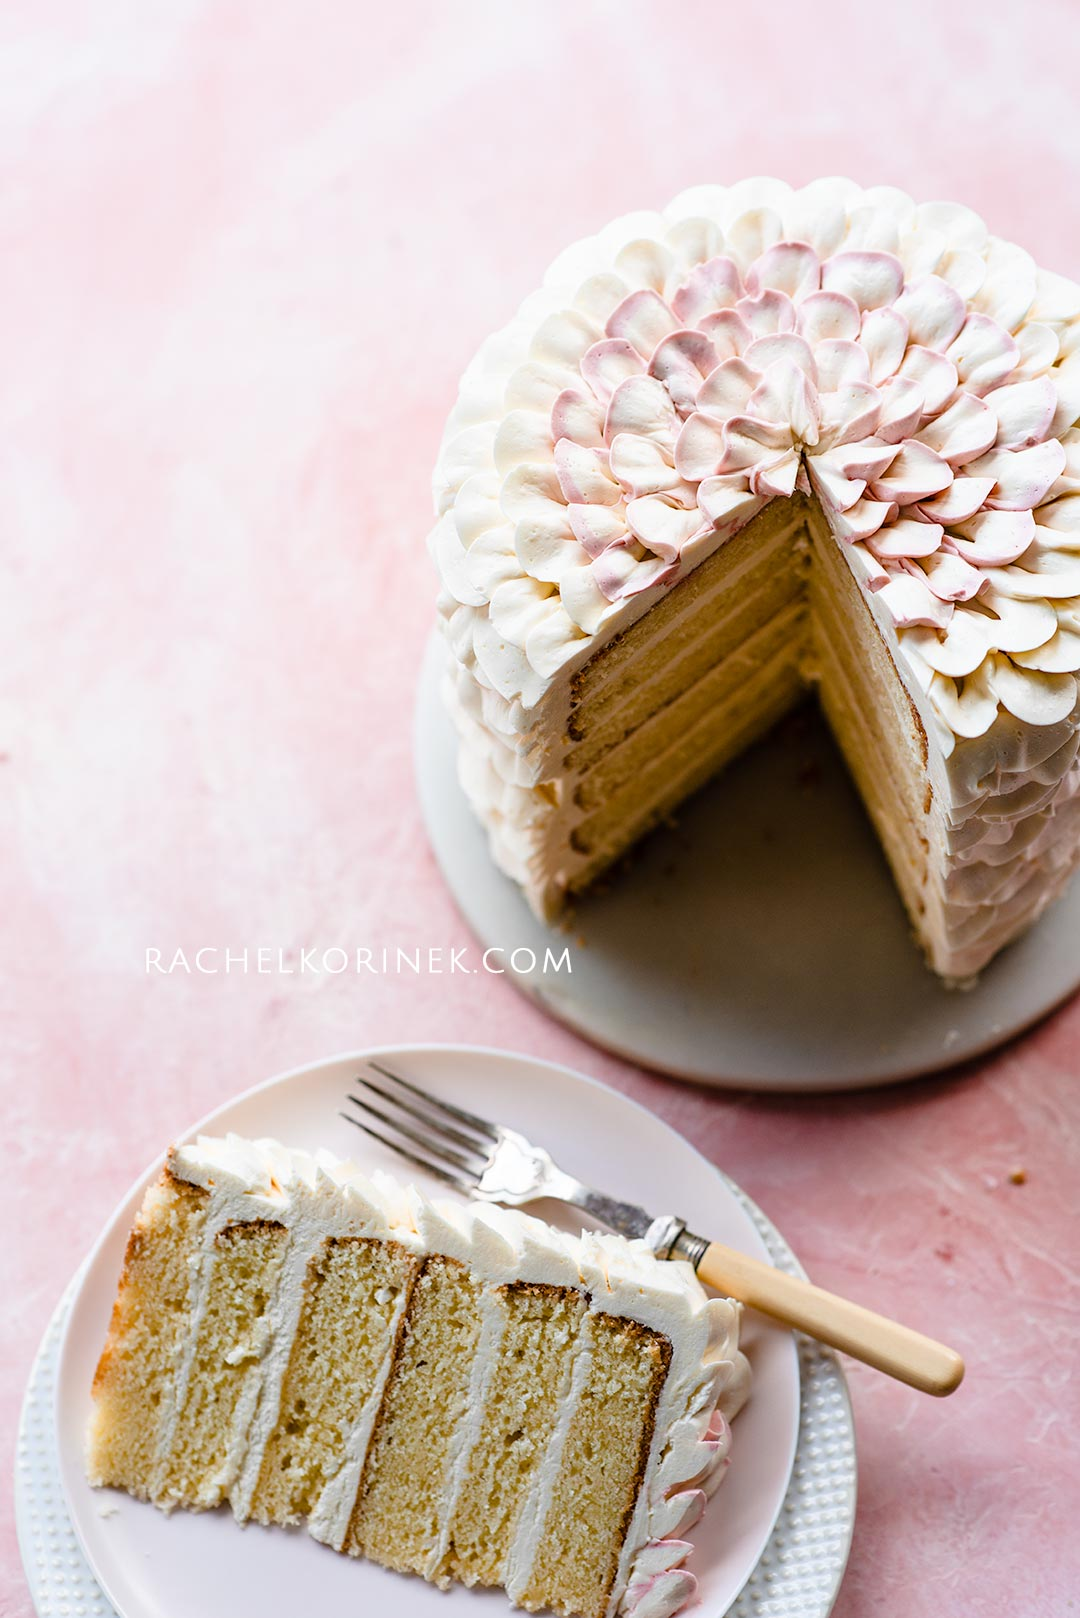 Rachel Korinek Food Photographer | Icing On The Cake. Click to check out my latest food photography projects.  #twolovesstudio #beautifulcuisine #foodbloggerpro #foodphotography #learnfoodphotography #foodblogger #learnphotography #foodstyling #lightingtips #naturallight #foodphotographer